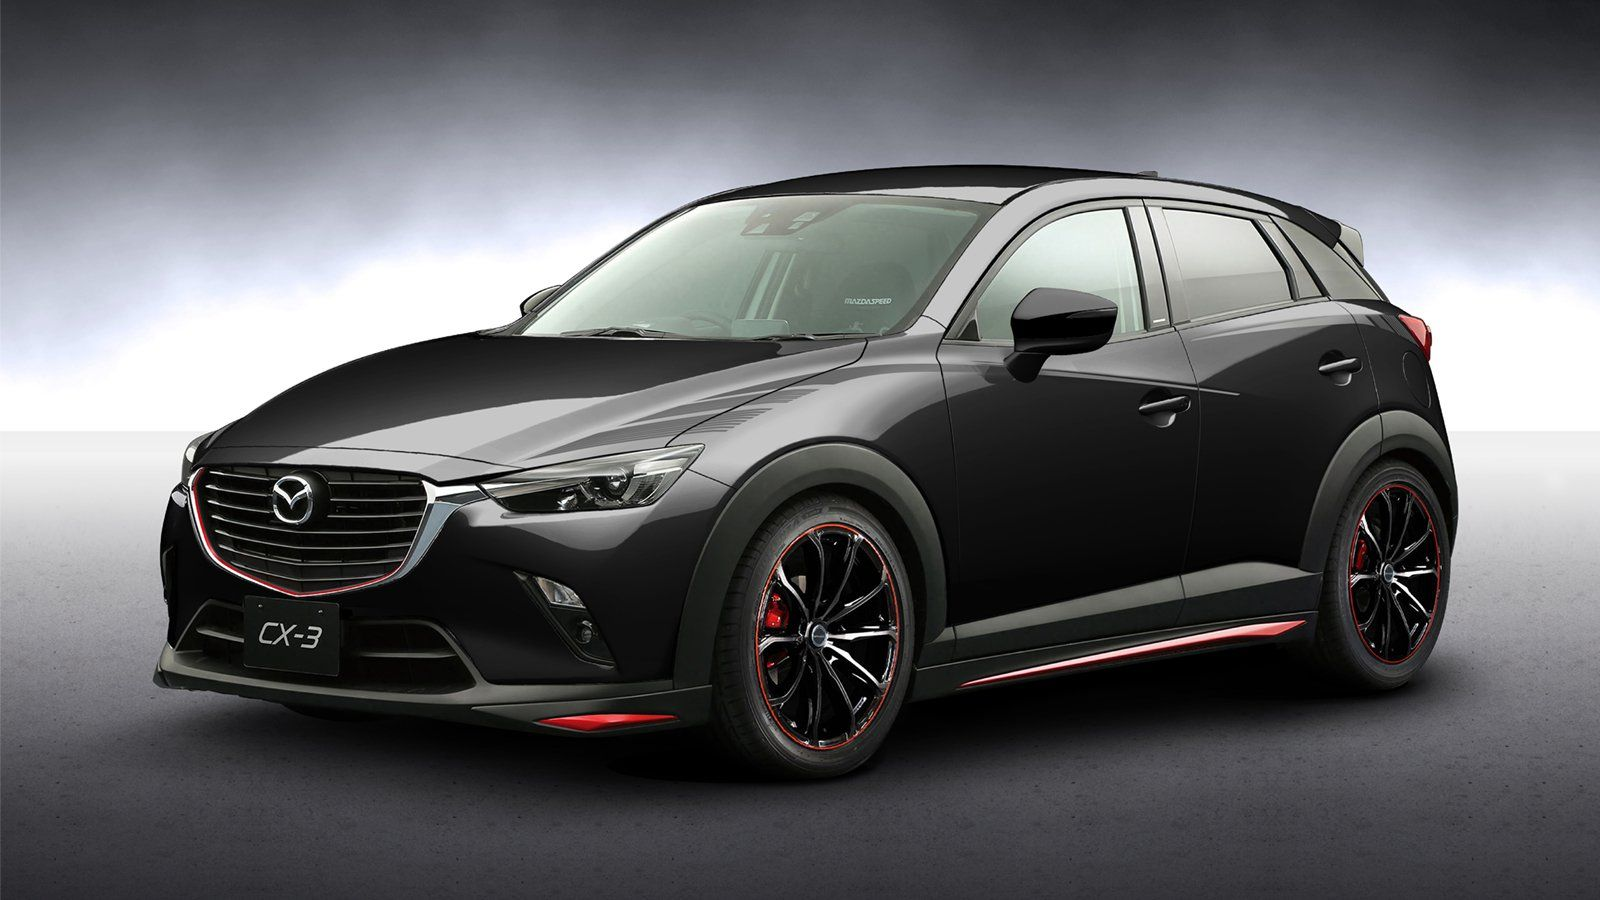 previewing the mazdaspeed cx 3 mazda cx3 forum mazda. Black Bedroom Furniture Sets. Home Design Ideas